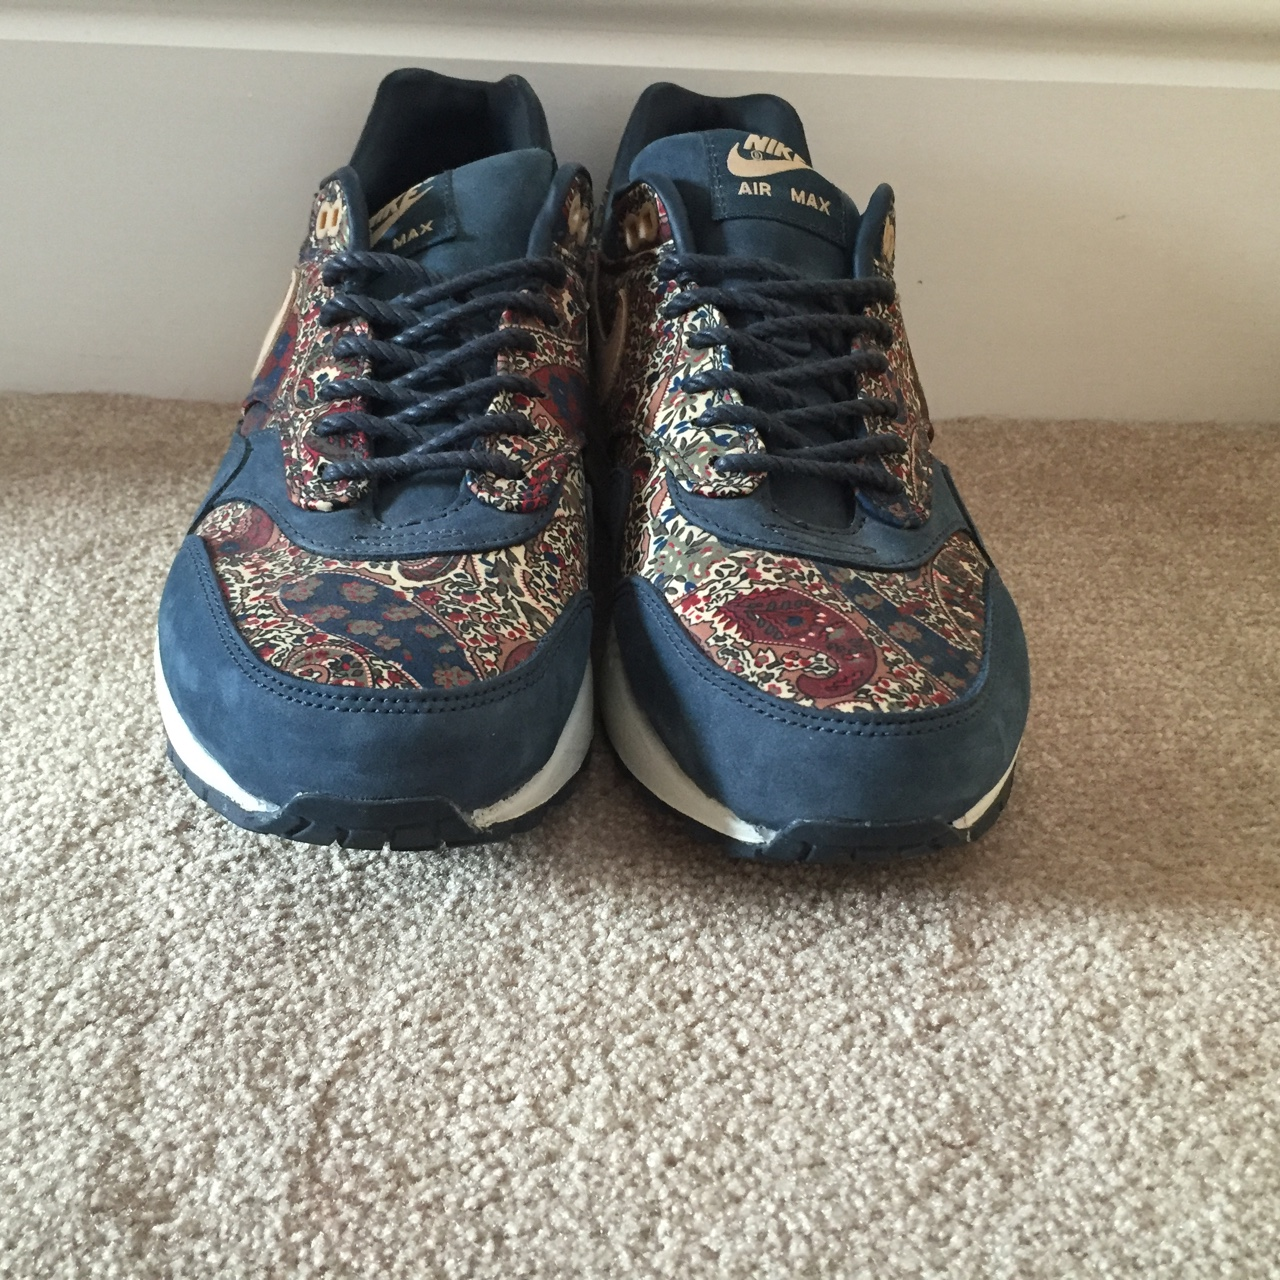 London Max Liberty Depop Collection Paisley Nike 1 Air JcF1lK